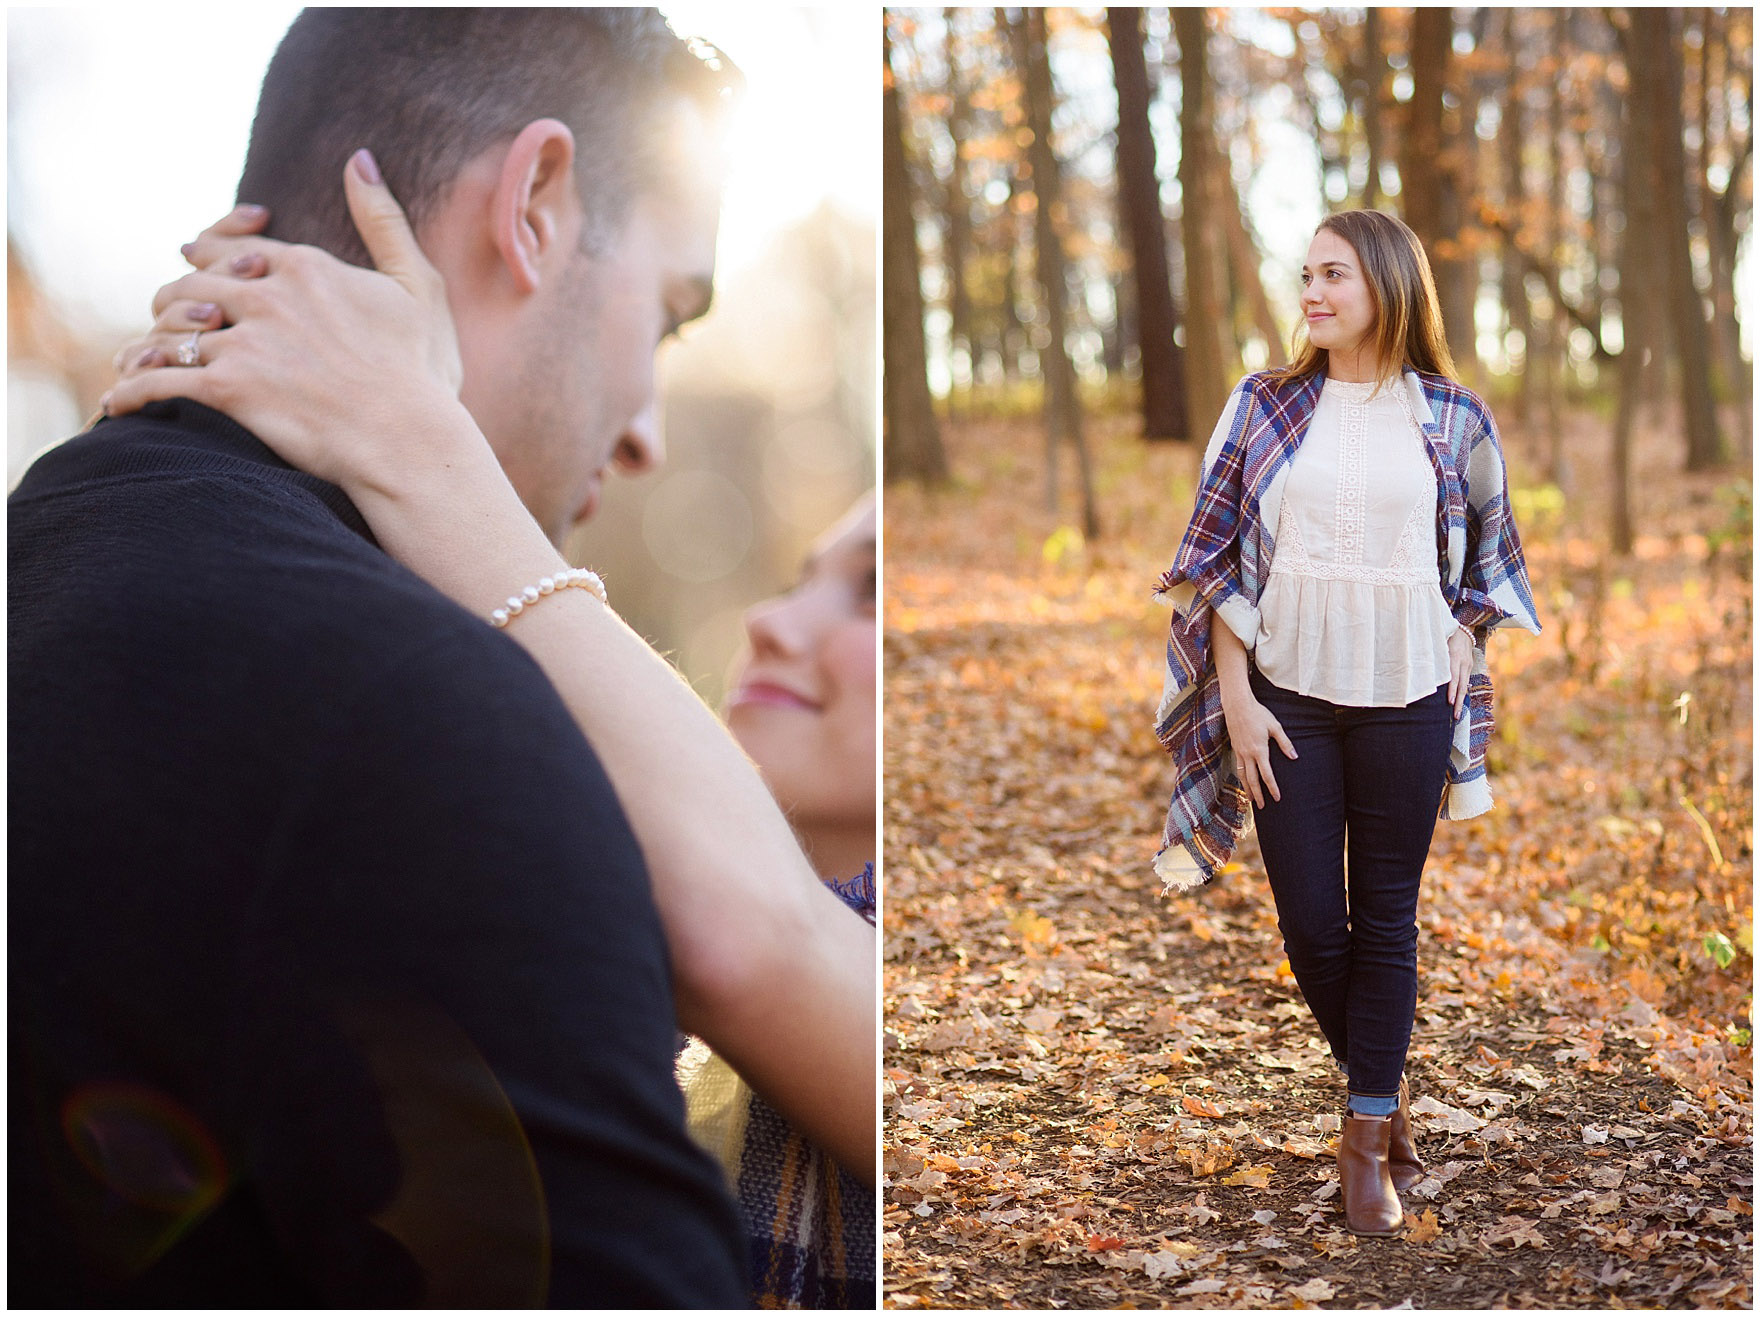 A couple embraces in the golden light during a fall woods engagement session.